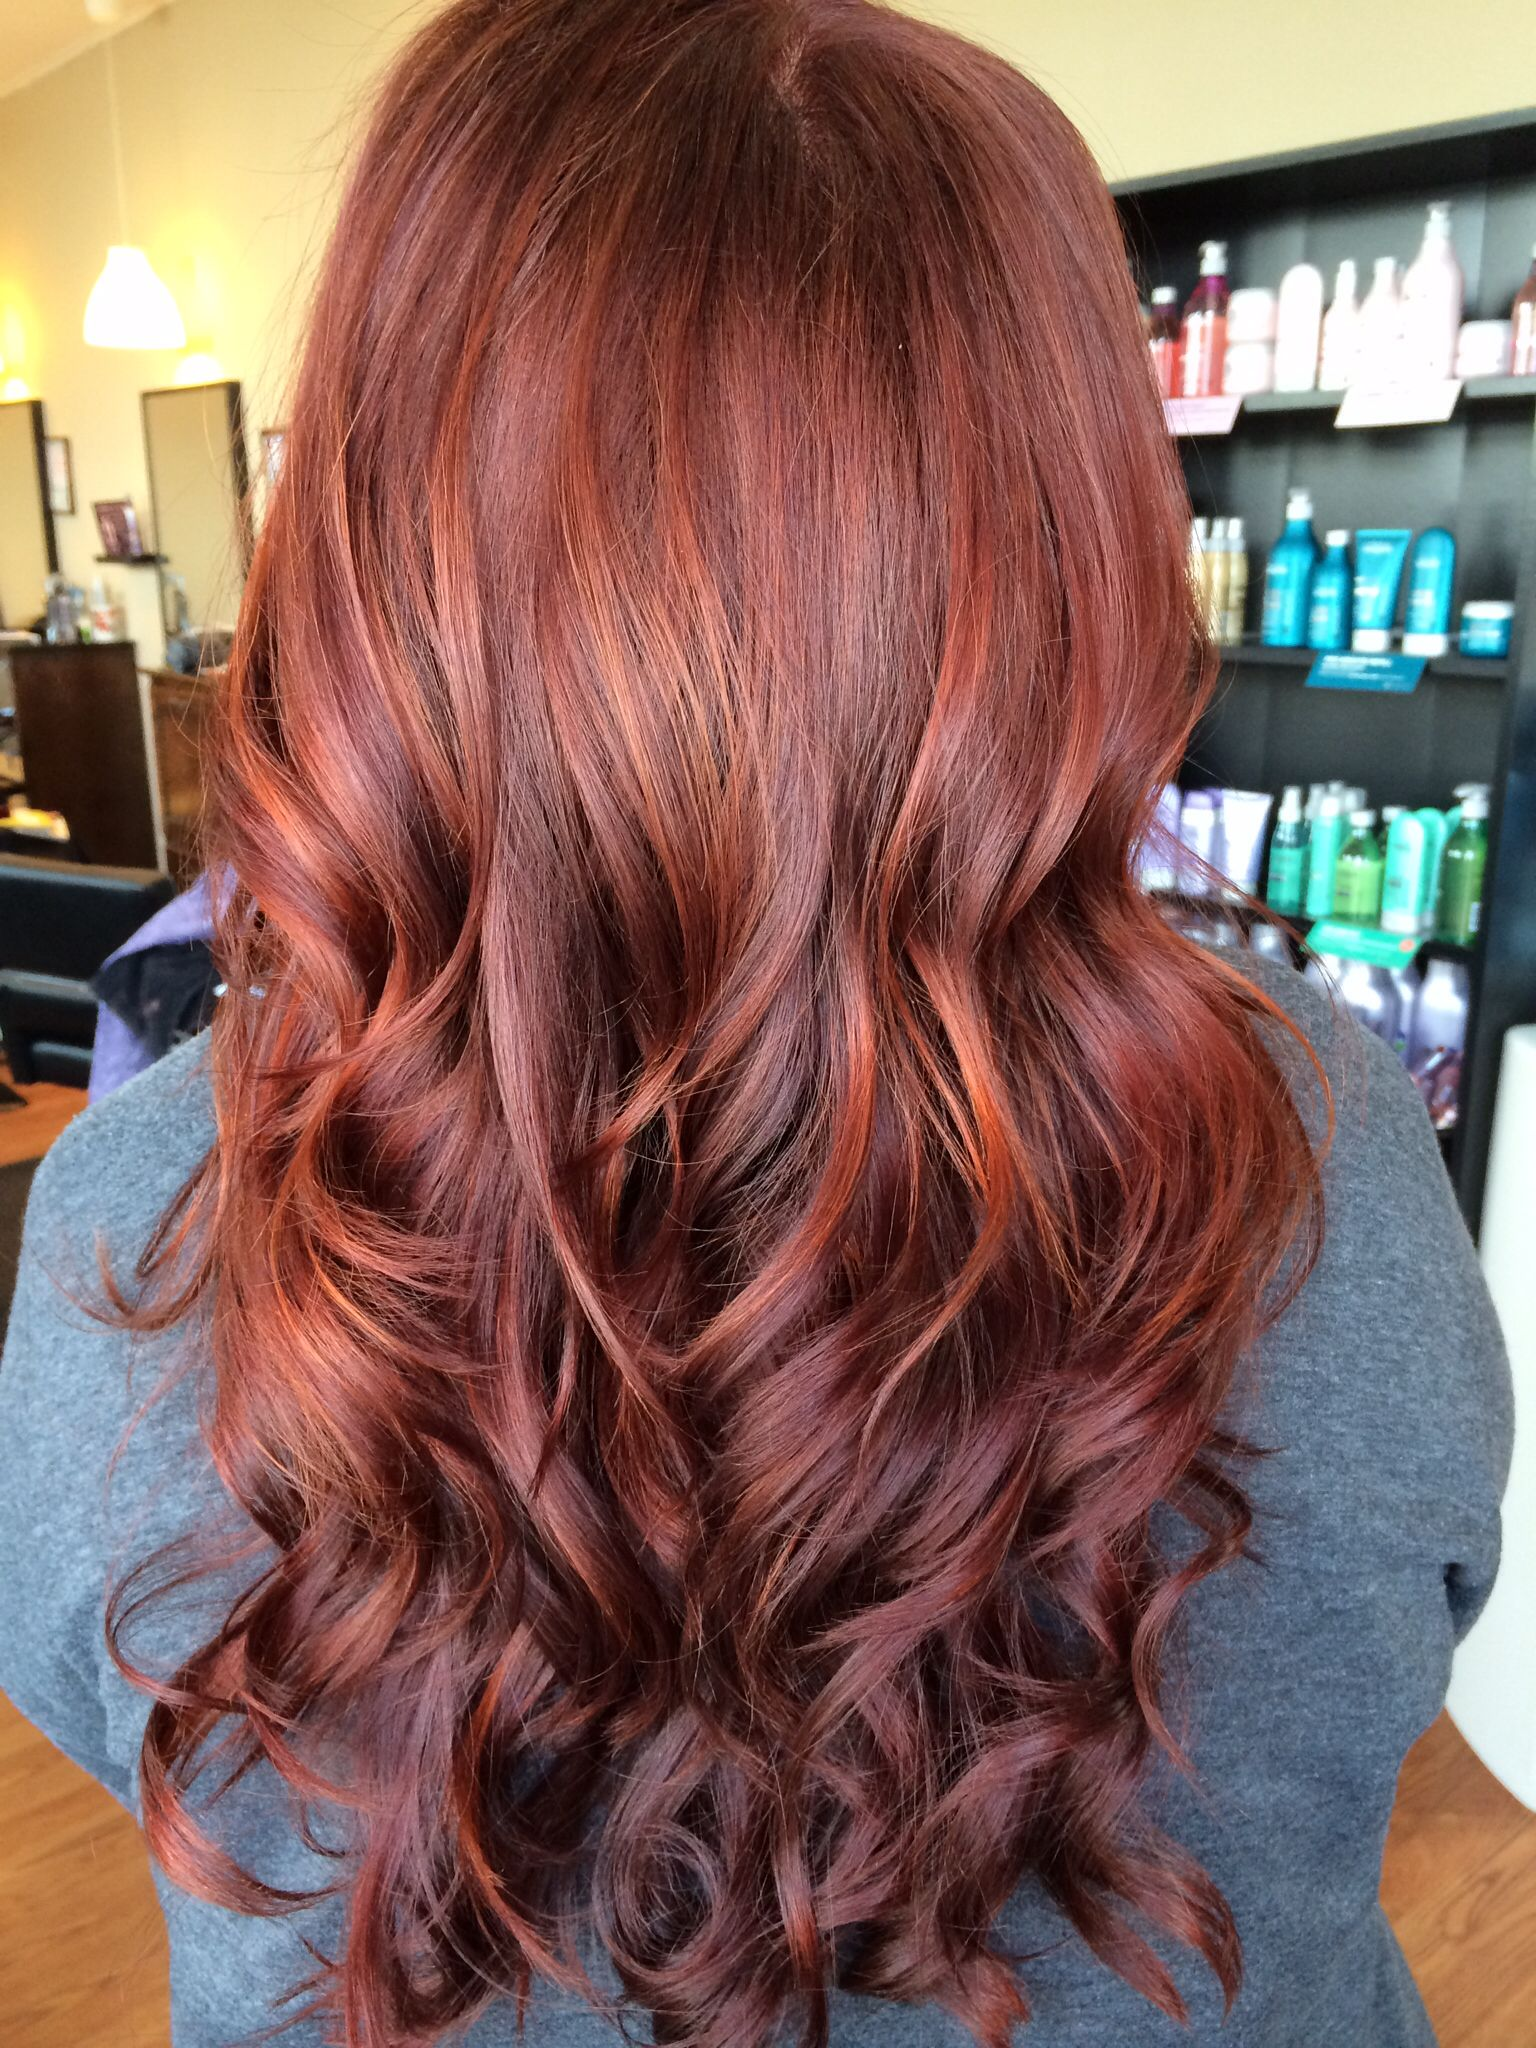 balayage highlights red hair hair on pinterest balayage natural red and red hair hair. Black Bedroom Furniture Sets. Home Design Ideas